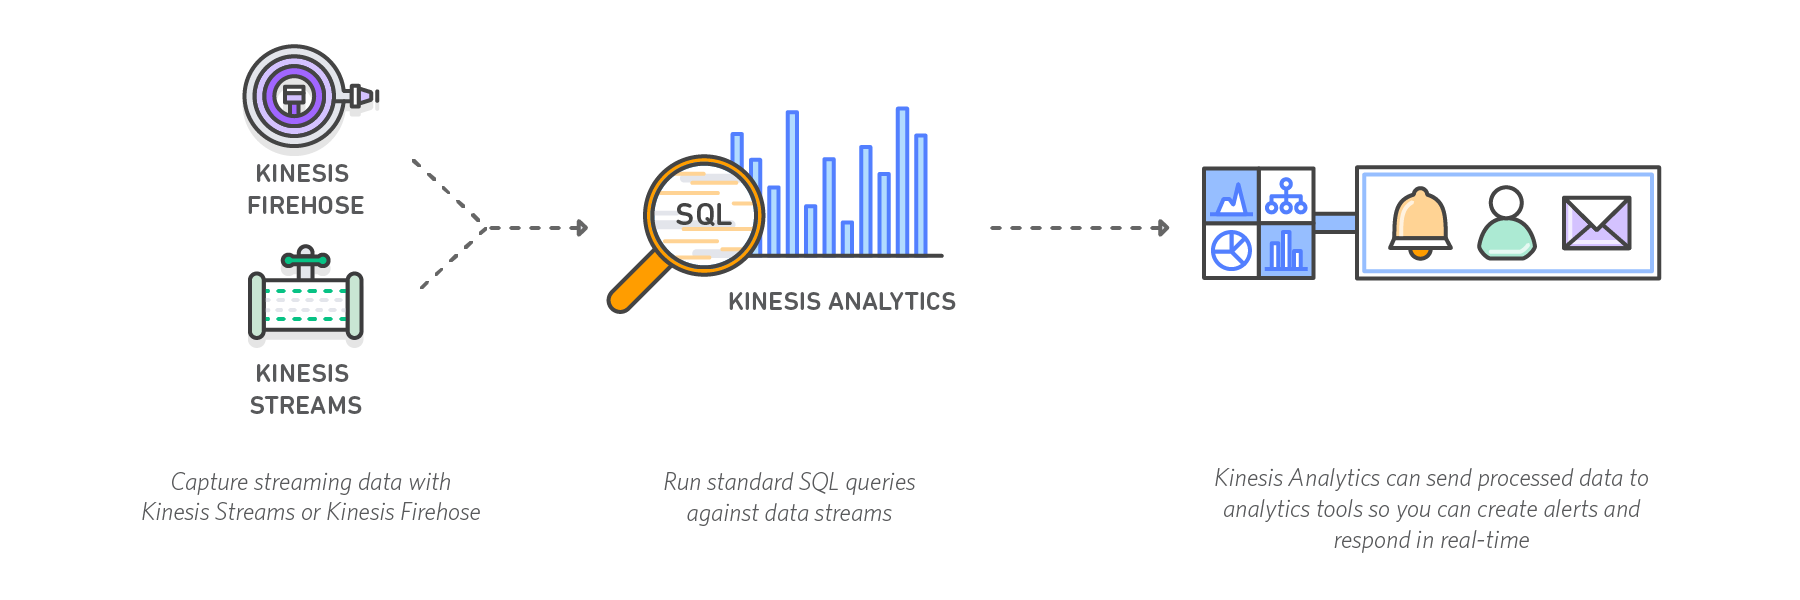 diagram-kinesis-analytics-how-it-works-may19